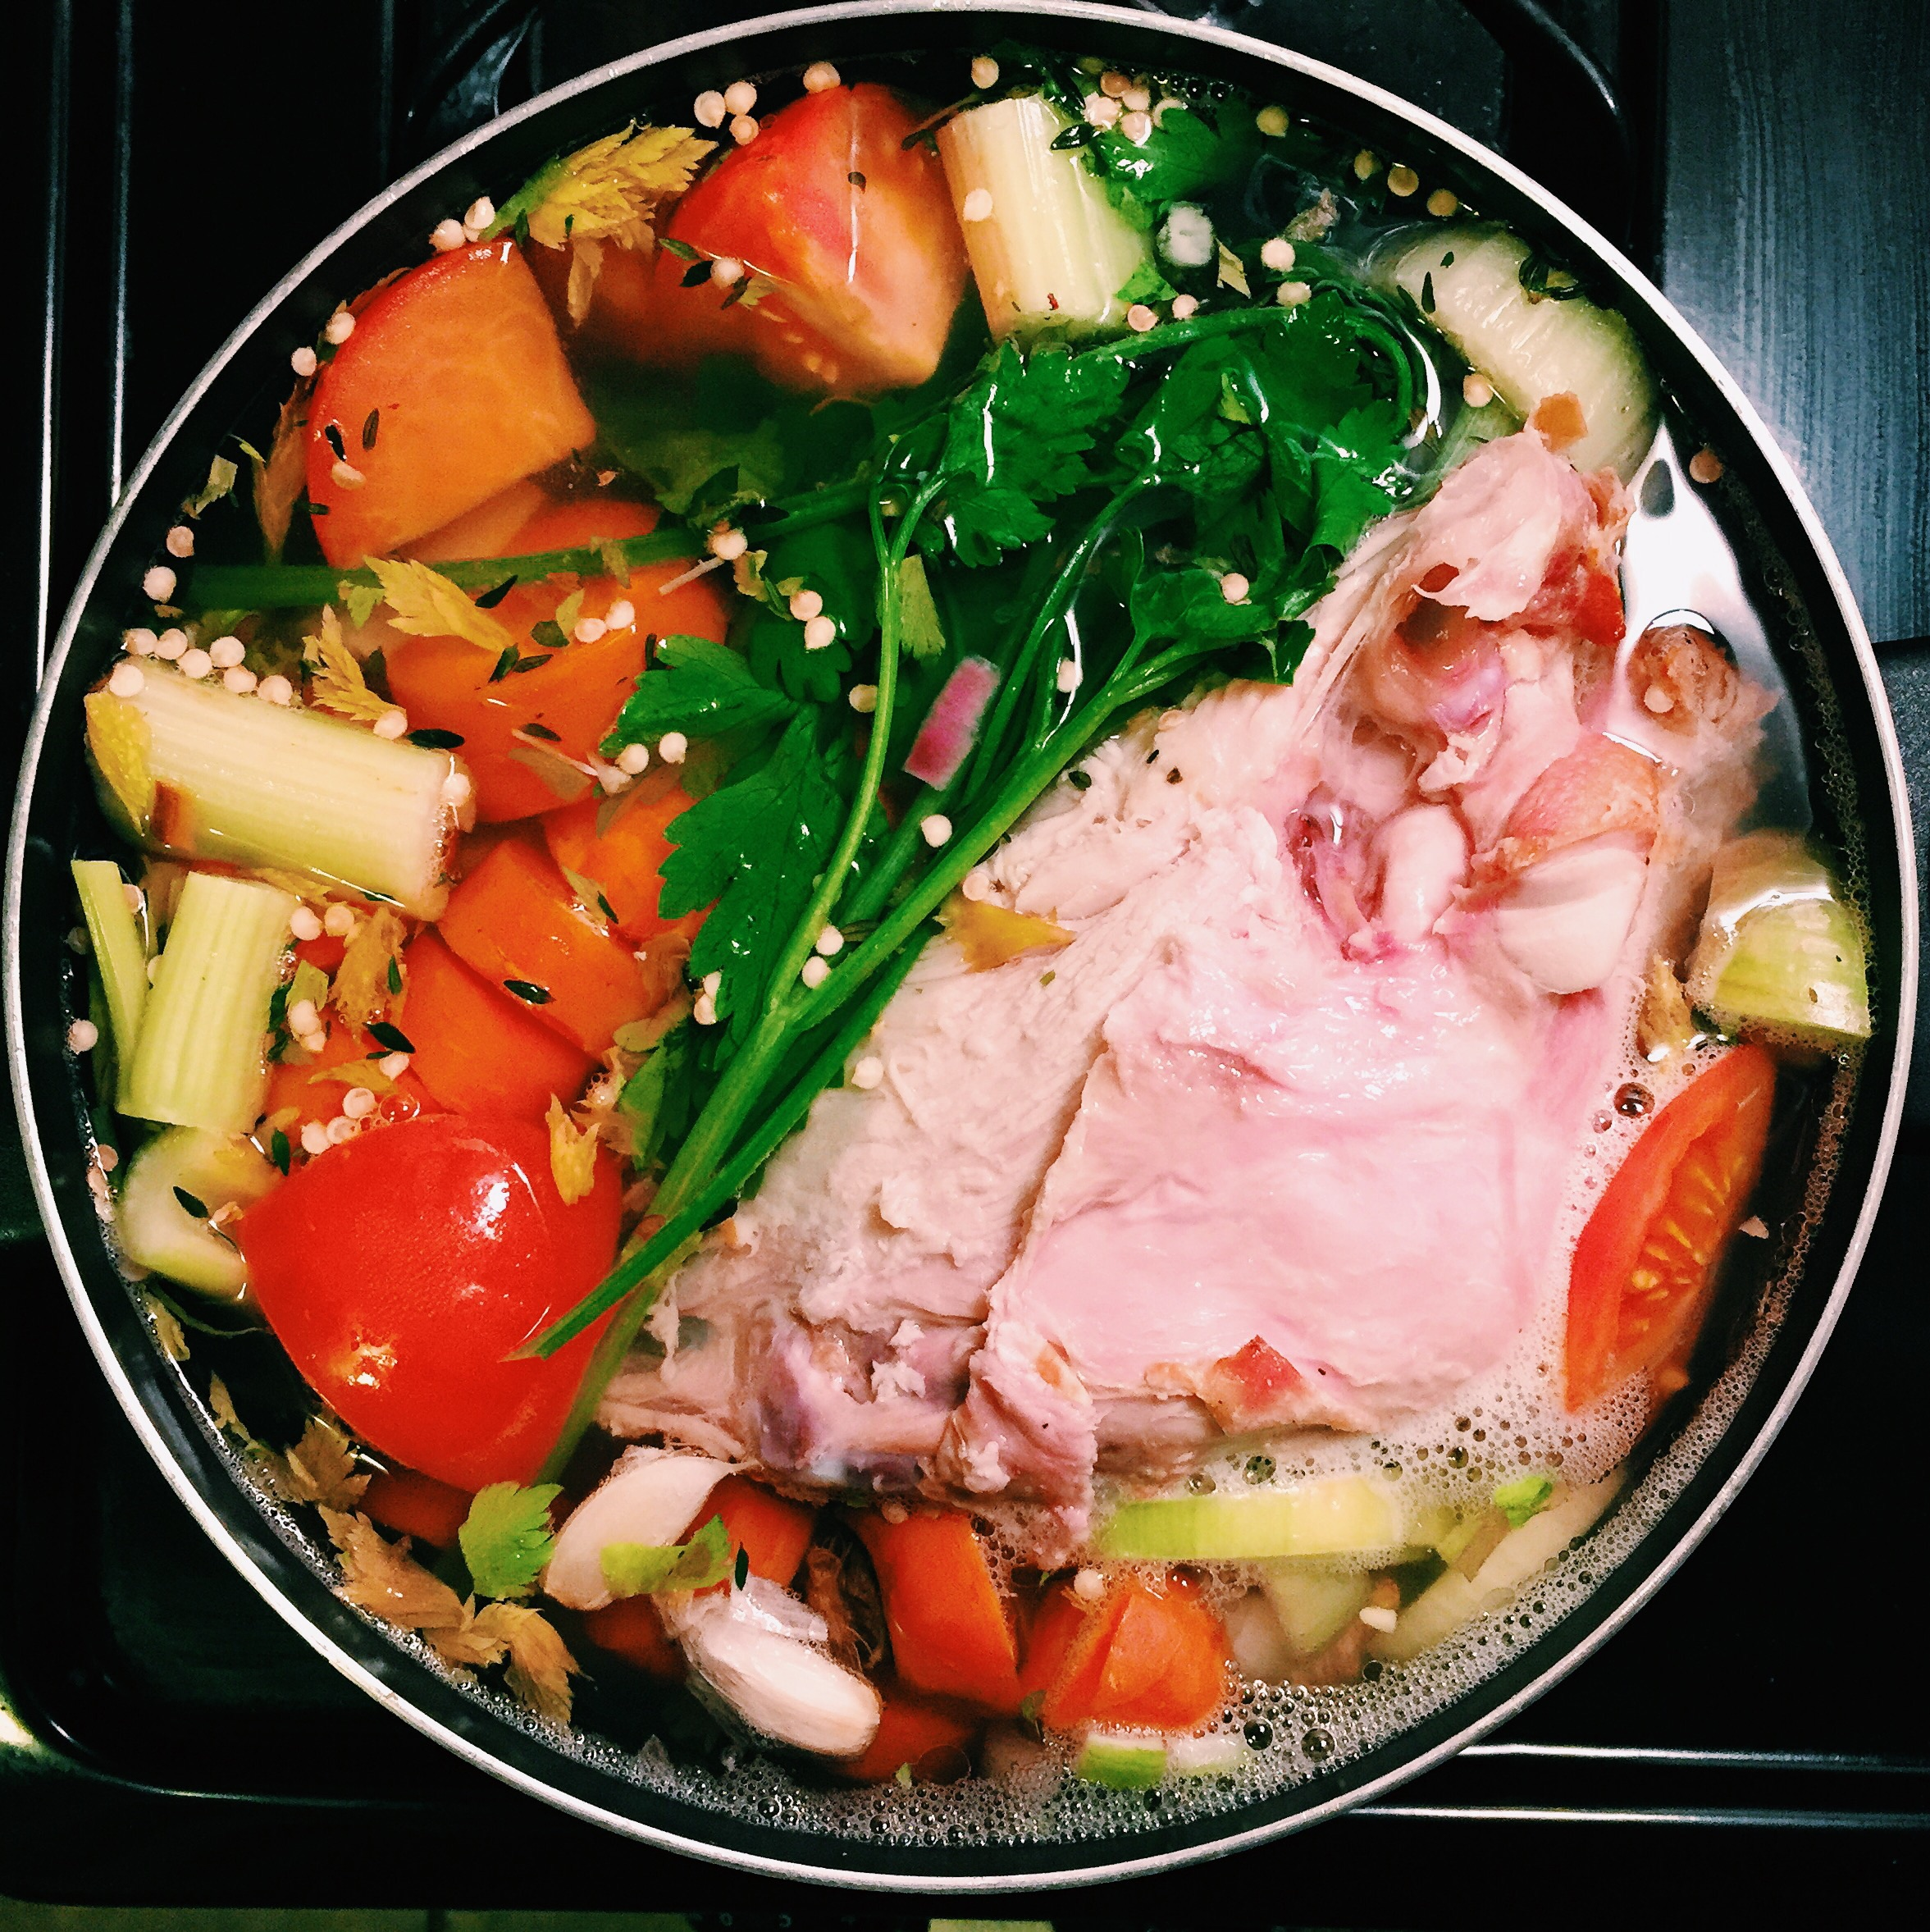 Thanksgiving 2014 Stock: turkey breast bones, garlic, onions, celery, carrots, parsley, scallions, thyme, green pepper